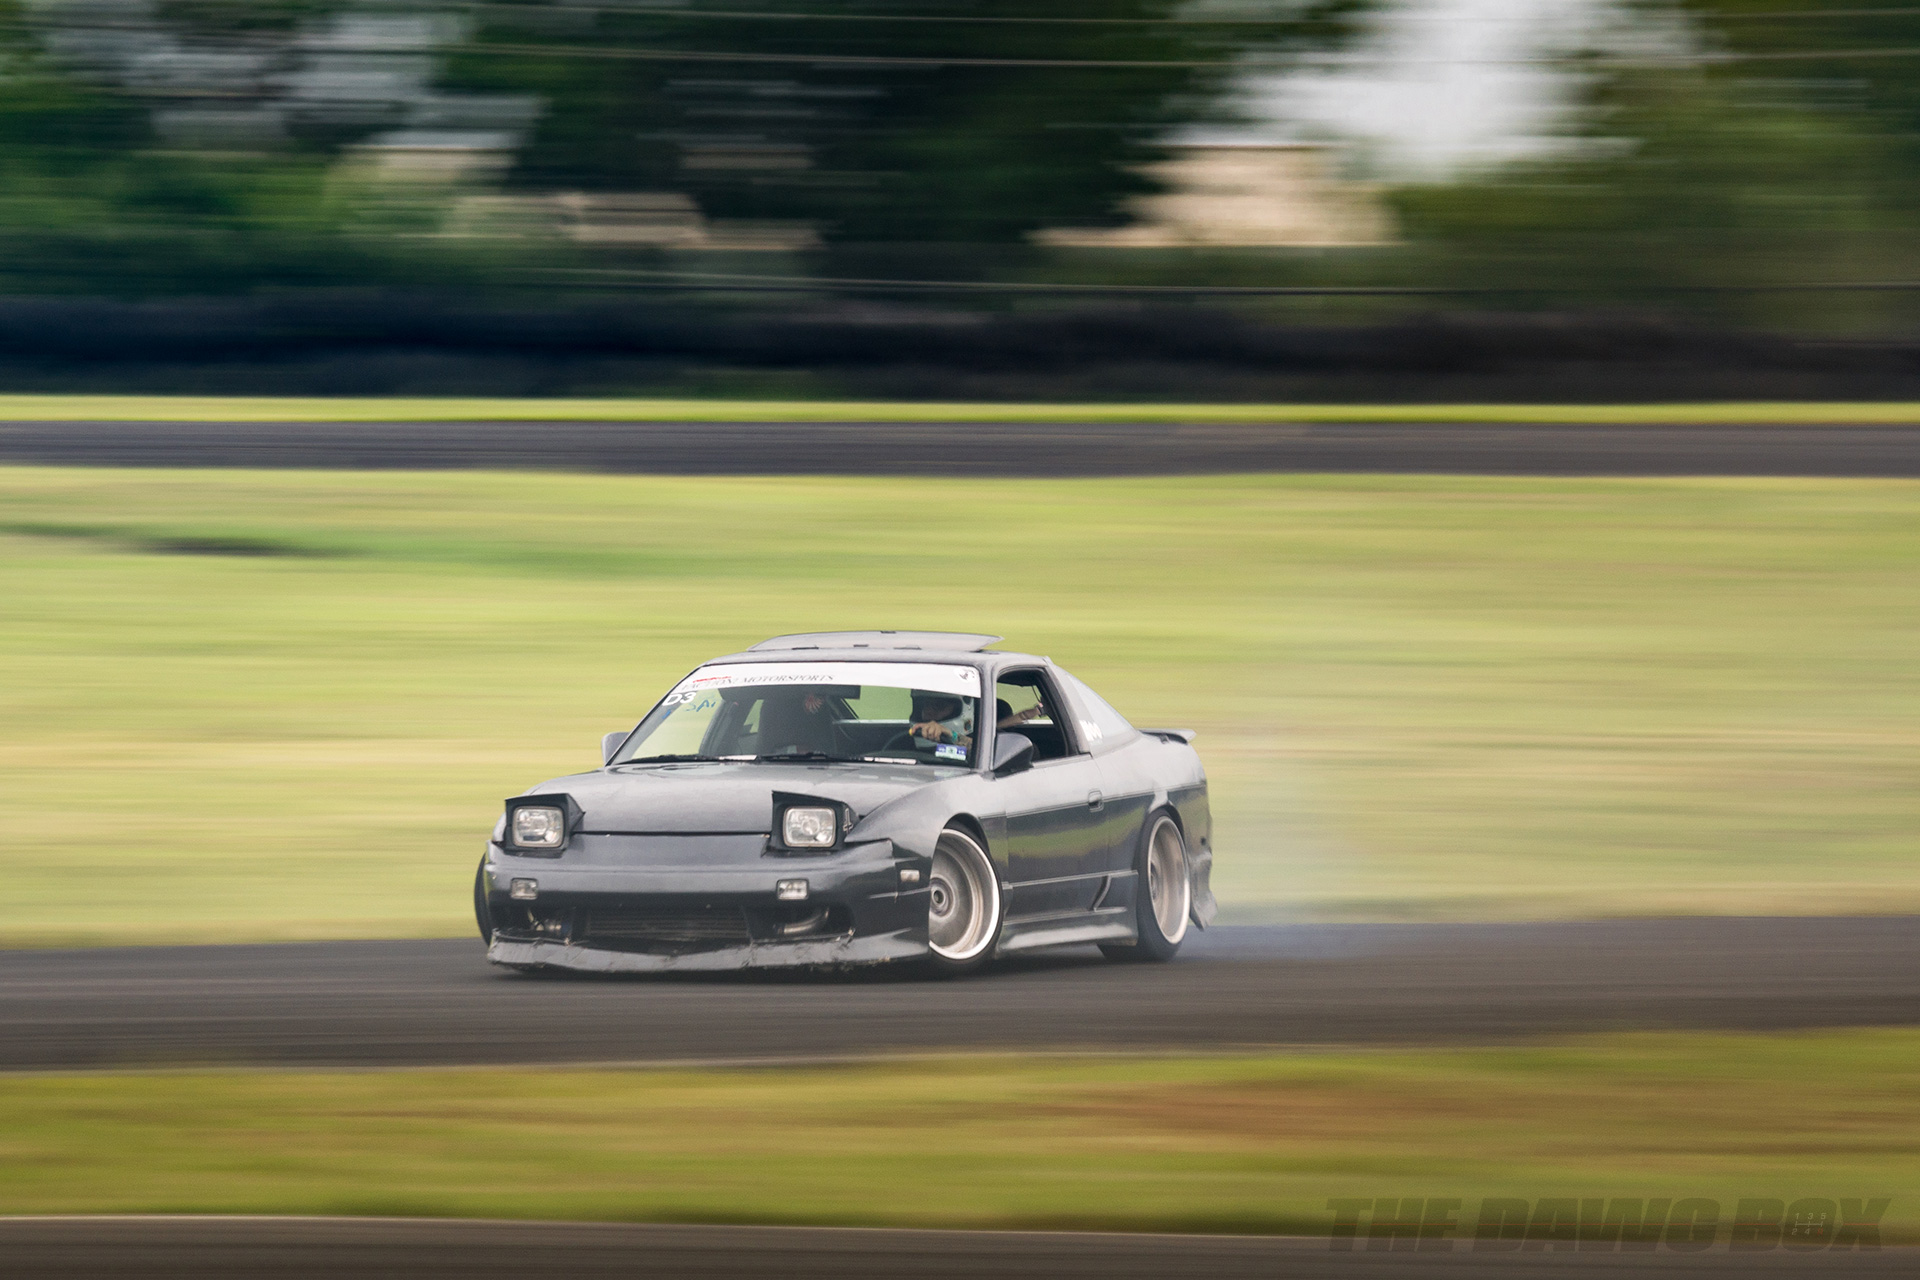 Nissan 240sx fastback S13 about to drift